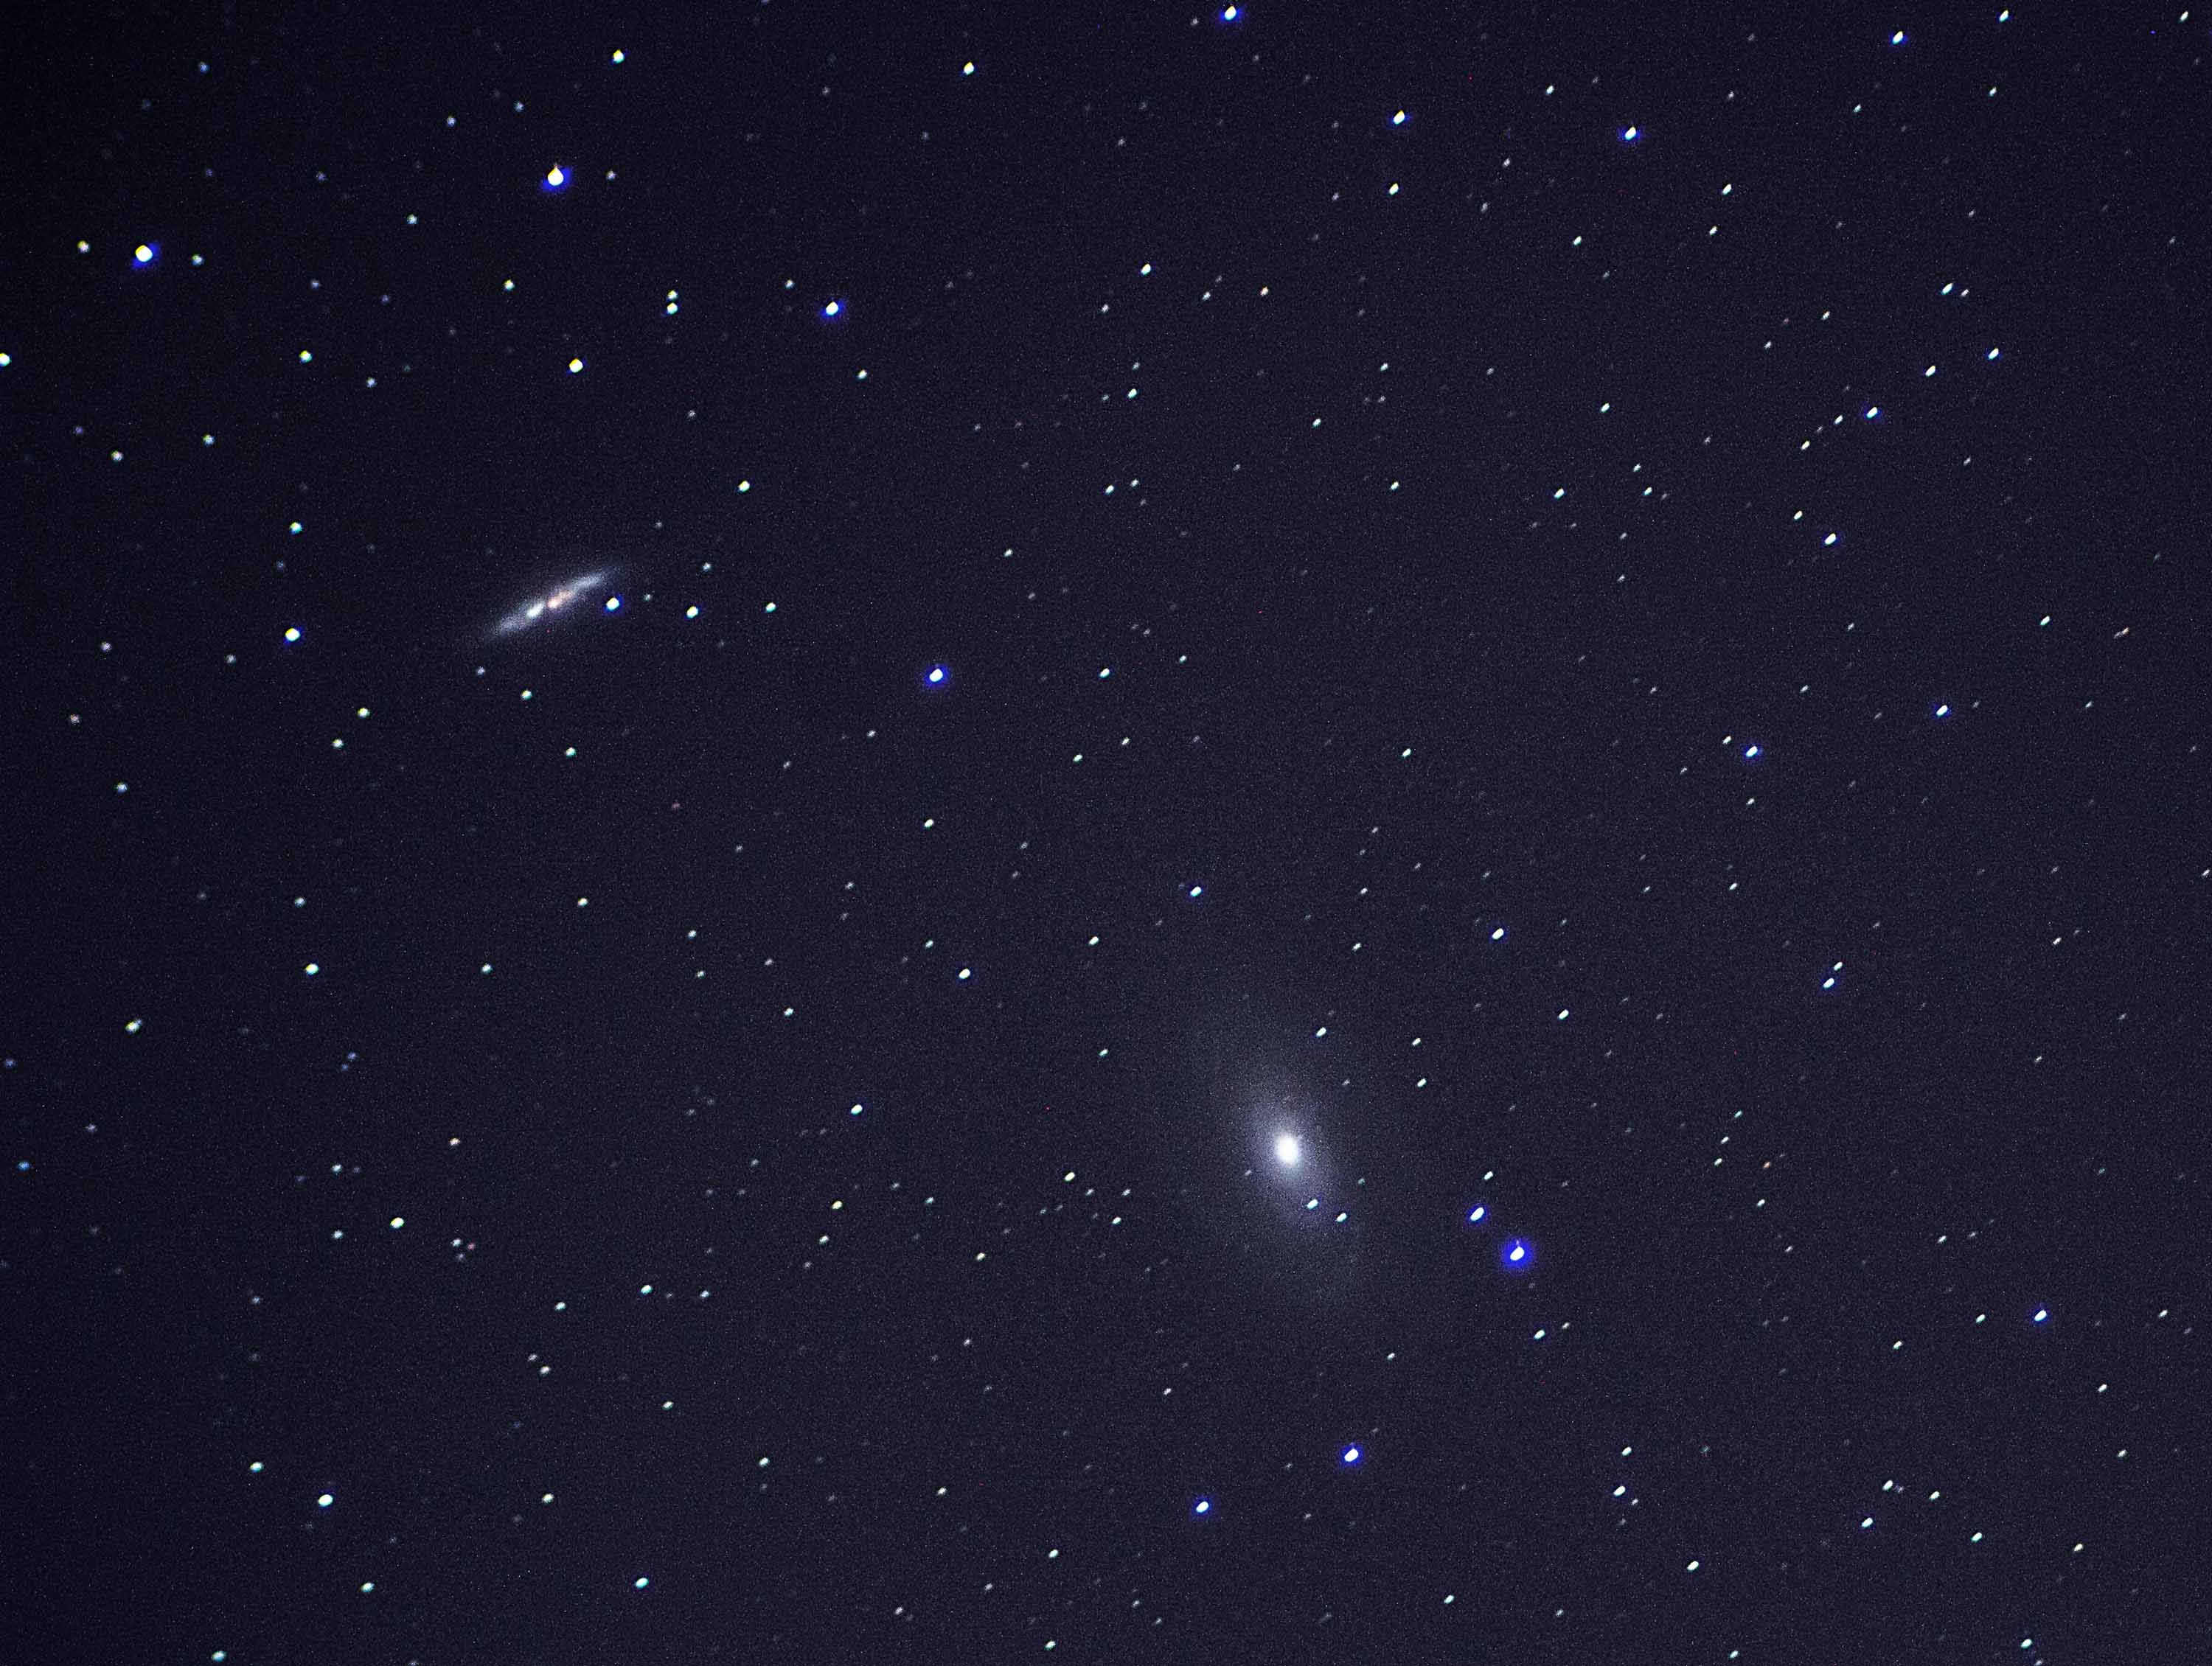 M81 and M82 - Bode and Cigar Galaxies  By Ken Kennedy.  22/11/16  20:17UT. Canon EOS 100D. 181 seconds  ISO-400.